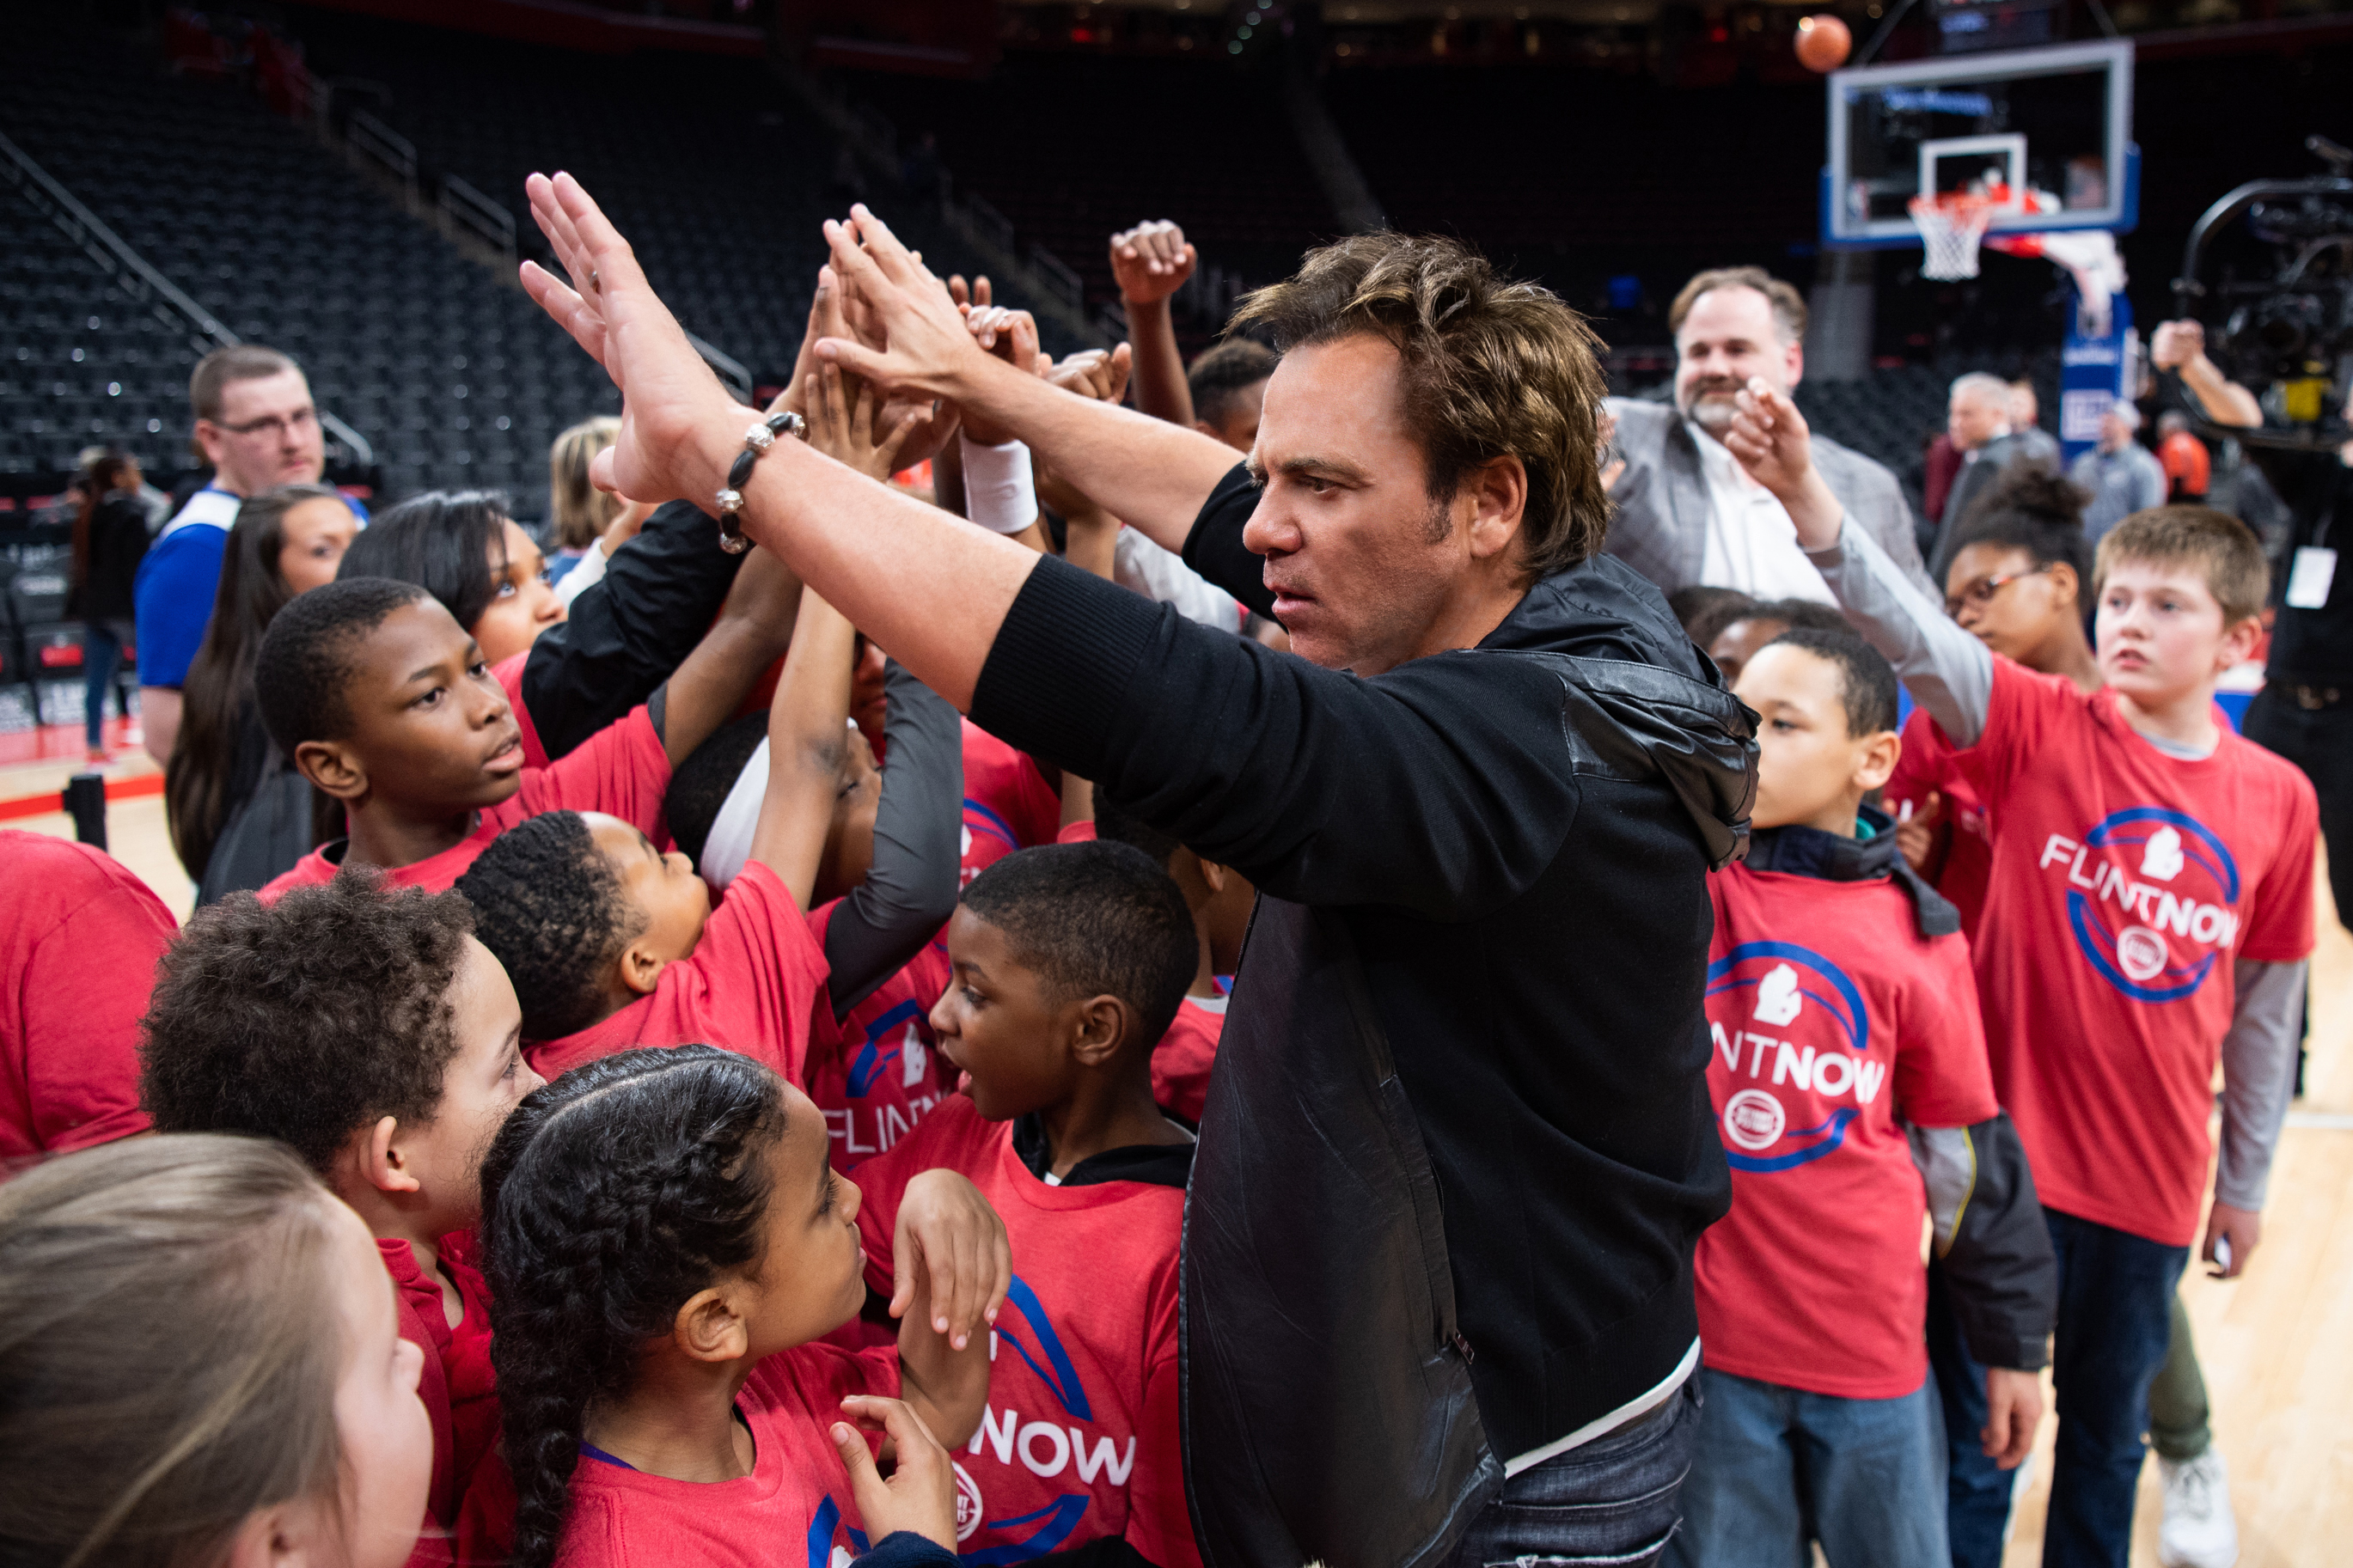 Detroit Pistons owner Tom Gores pledges organization will promote change in the wake of racial unrest